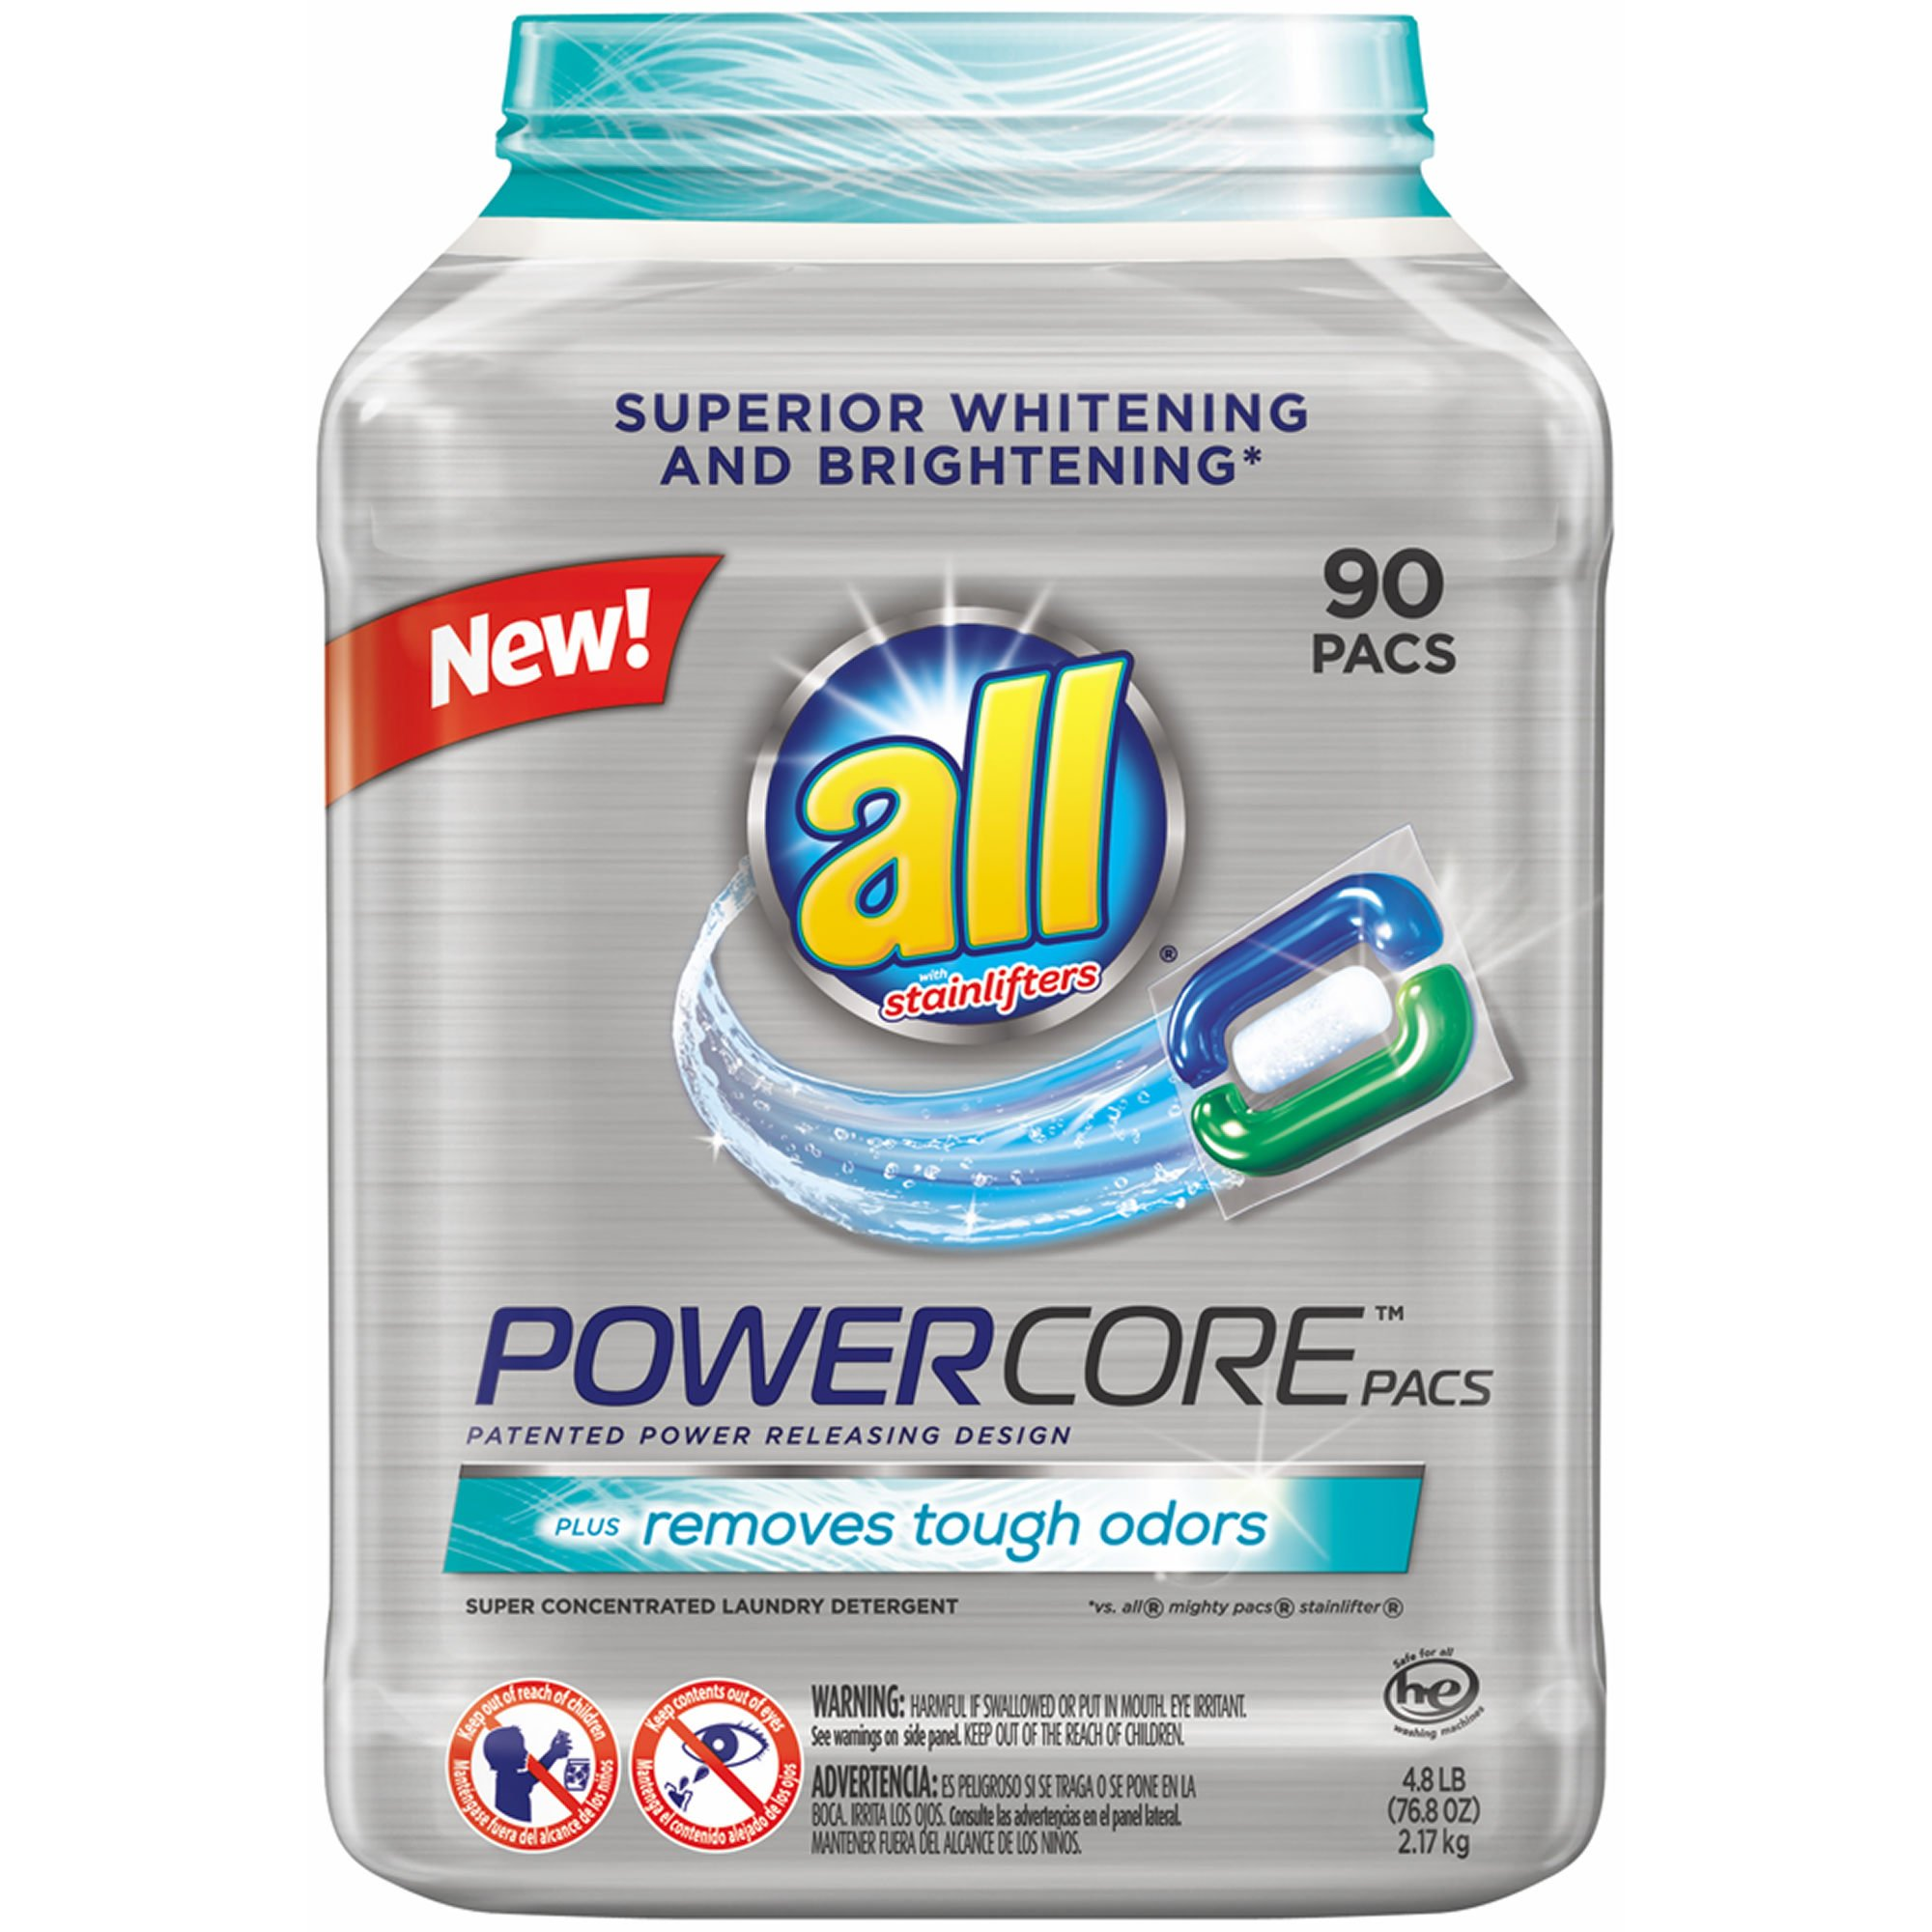 All Powercore Super Concentrated Laundry Detergent Pacs, 90 ct. (pack of 6)